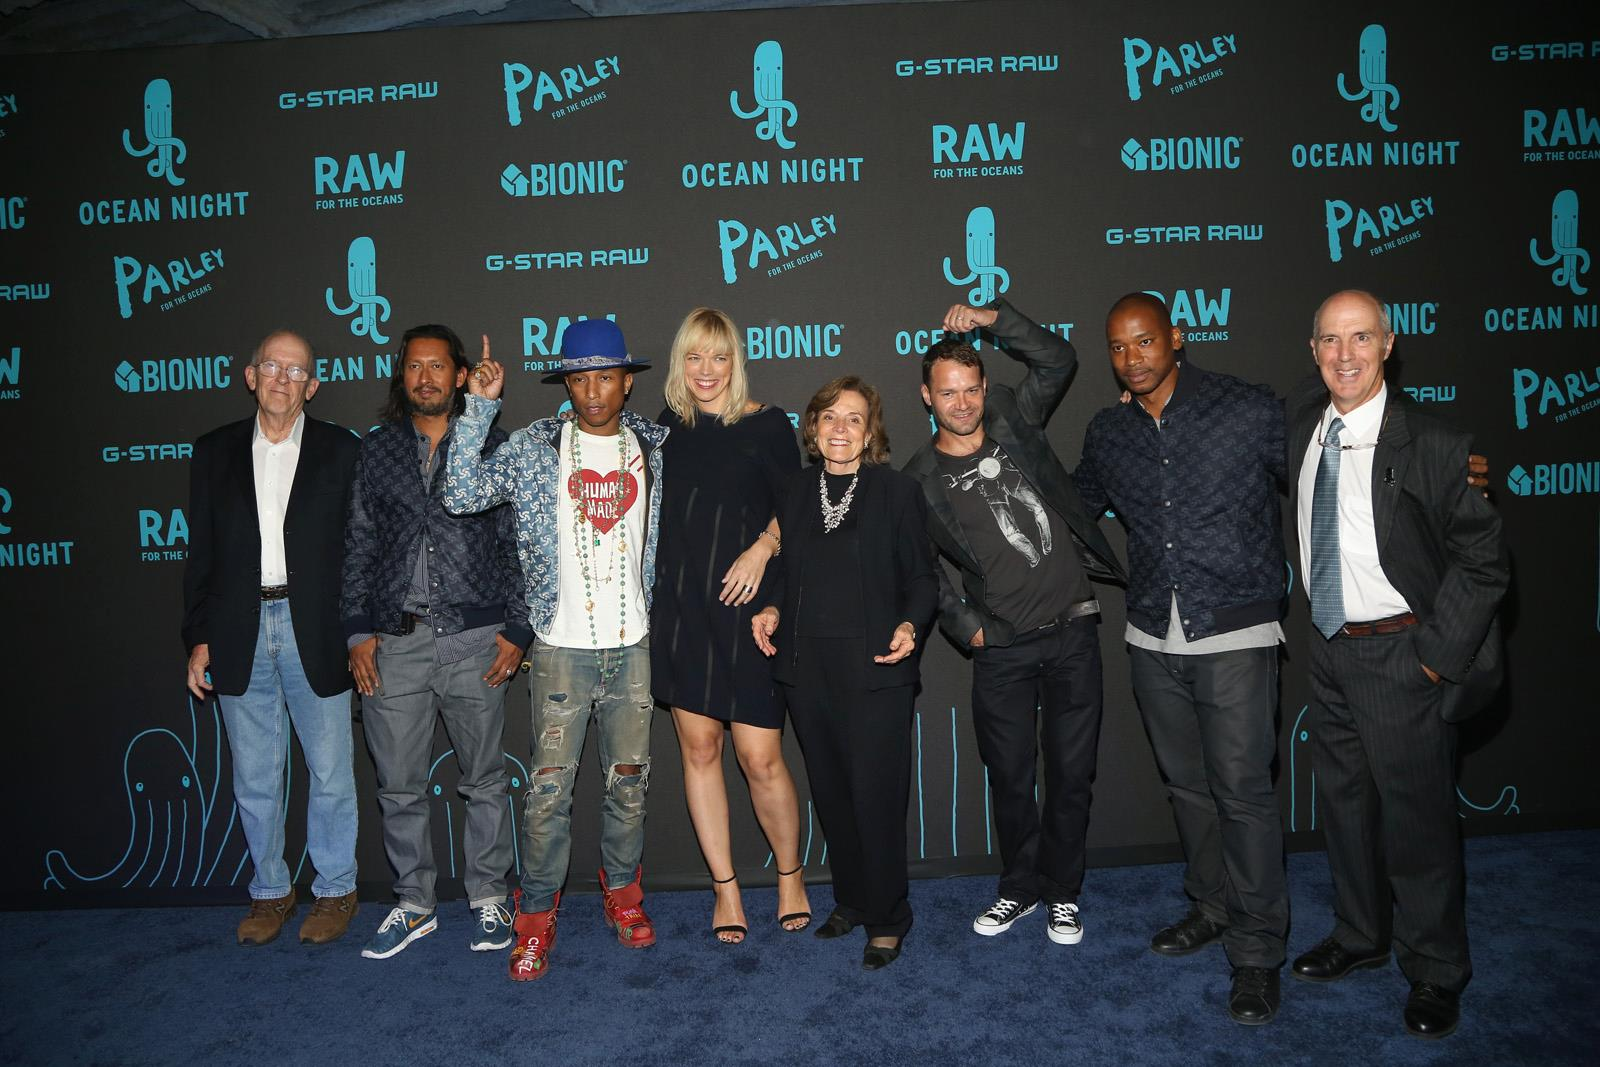 Roger Payne & Iain Kerr with Pharrell and Sylvia Earle